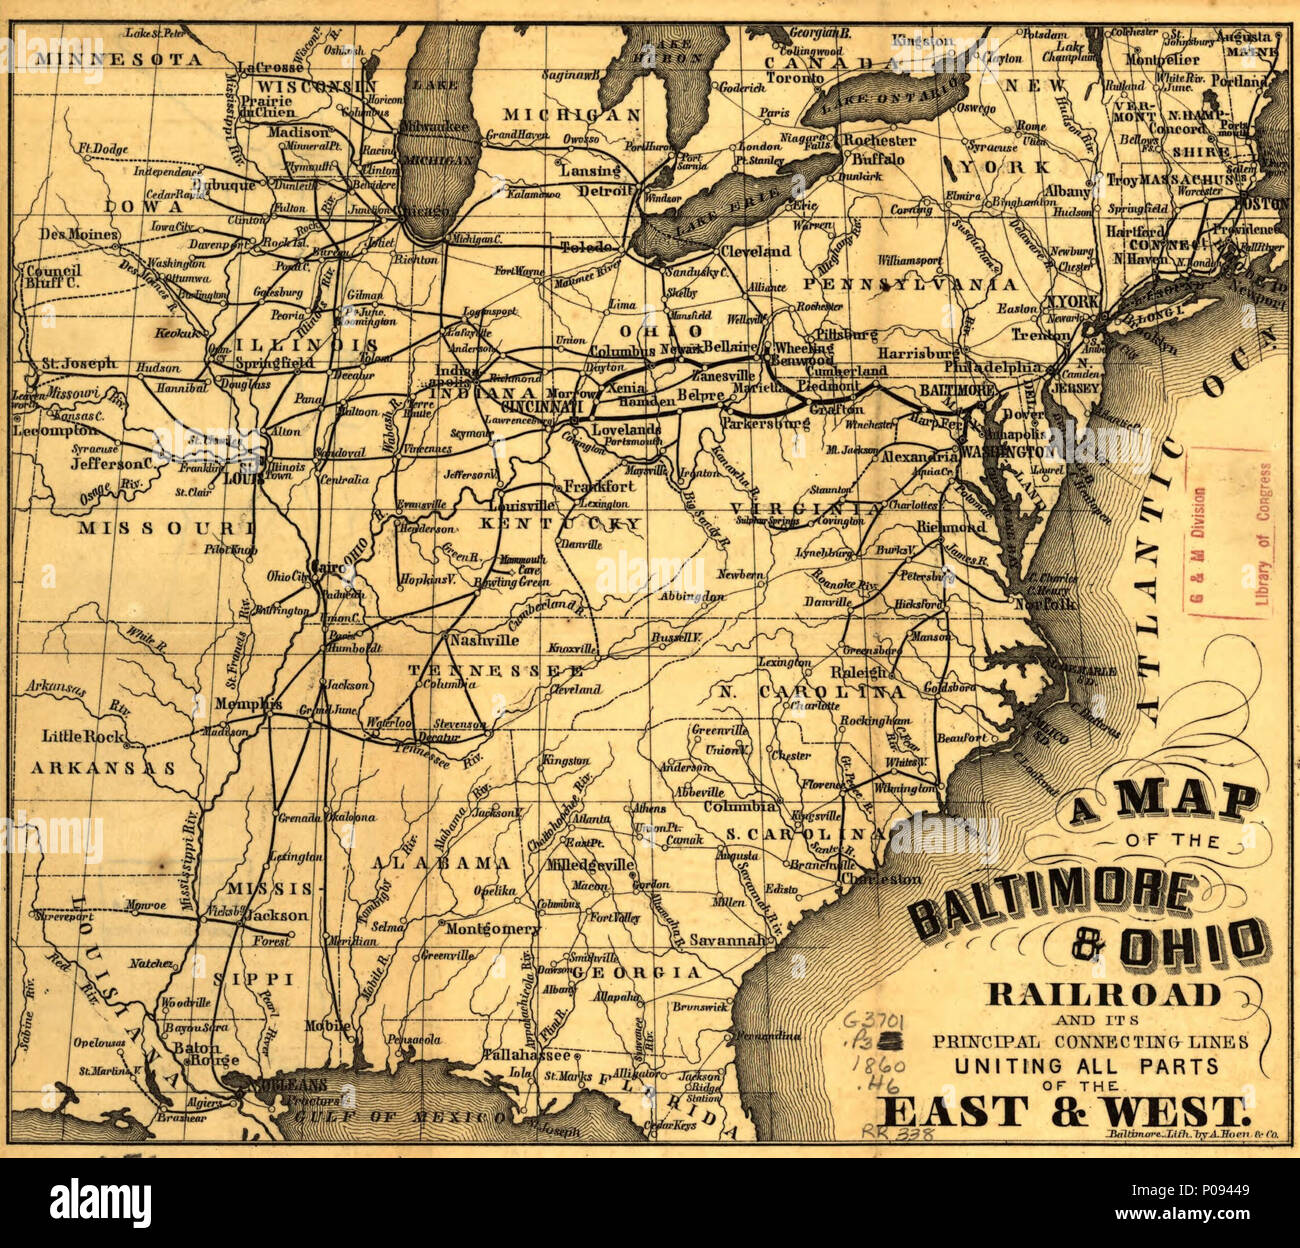 English: Outline map of the eastern half of the United ... on map of america in 1860, united states flag in 1860, blank united states in 1860, number of american states in 1860, south america map in 1860, union states in 1860, united states postal service in 1860, map of usa in 1860, northern states in the us in 1860, united states of america in 1860, us map in 1860, india map in 1860, map of europe in 1860, texas map in 1860, map of western states in 1860, states and capitals in 1860,